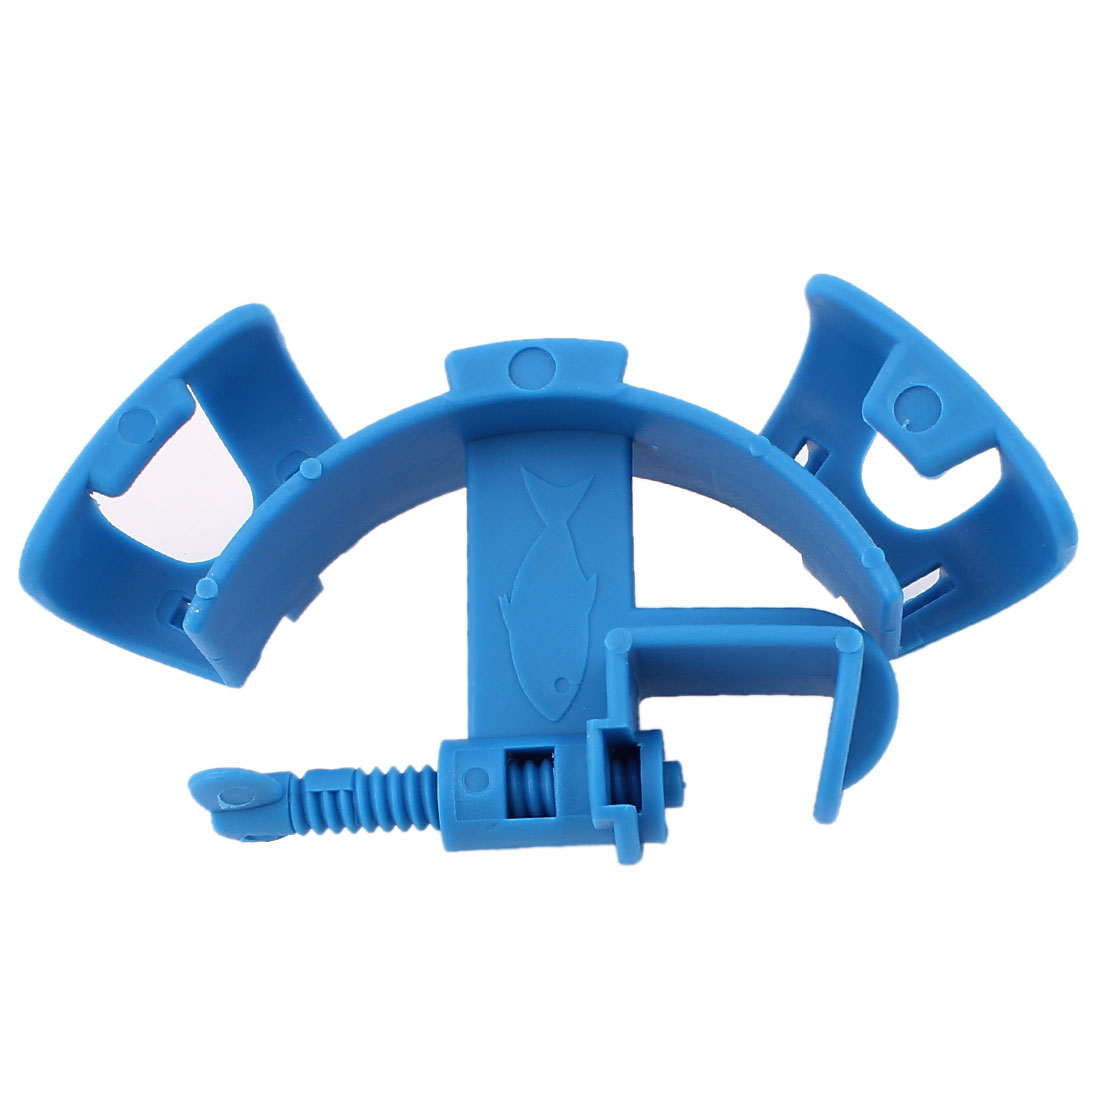 Fish Tank Aquarium Filtration Water Pipe Filter Hose Holder Blue